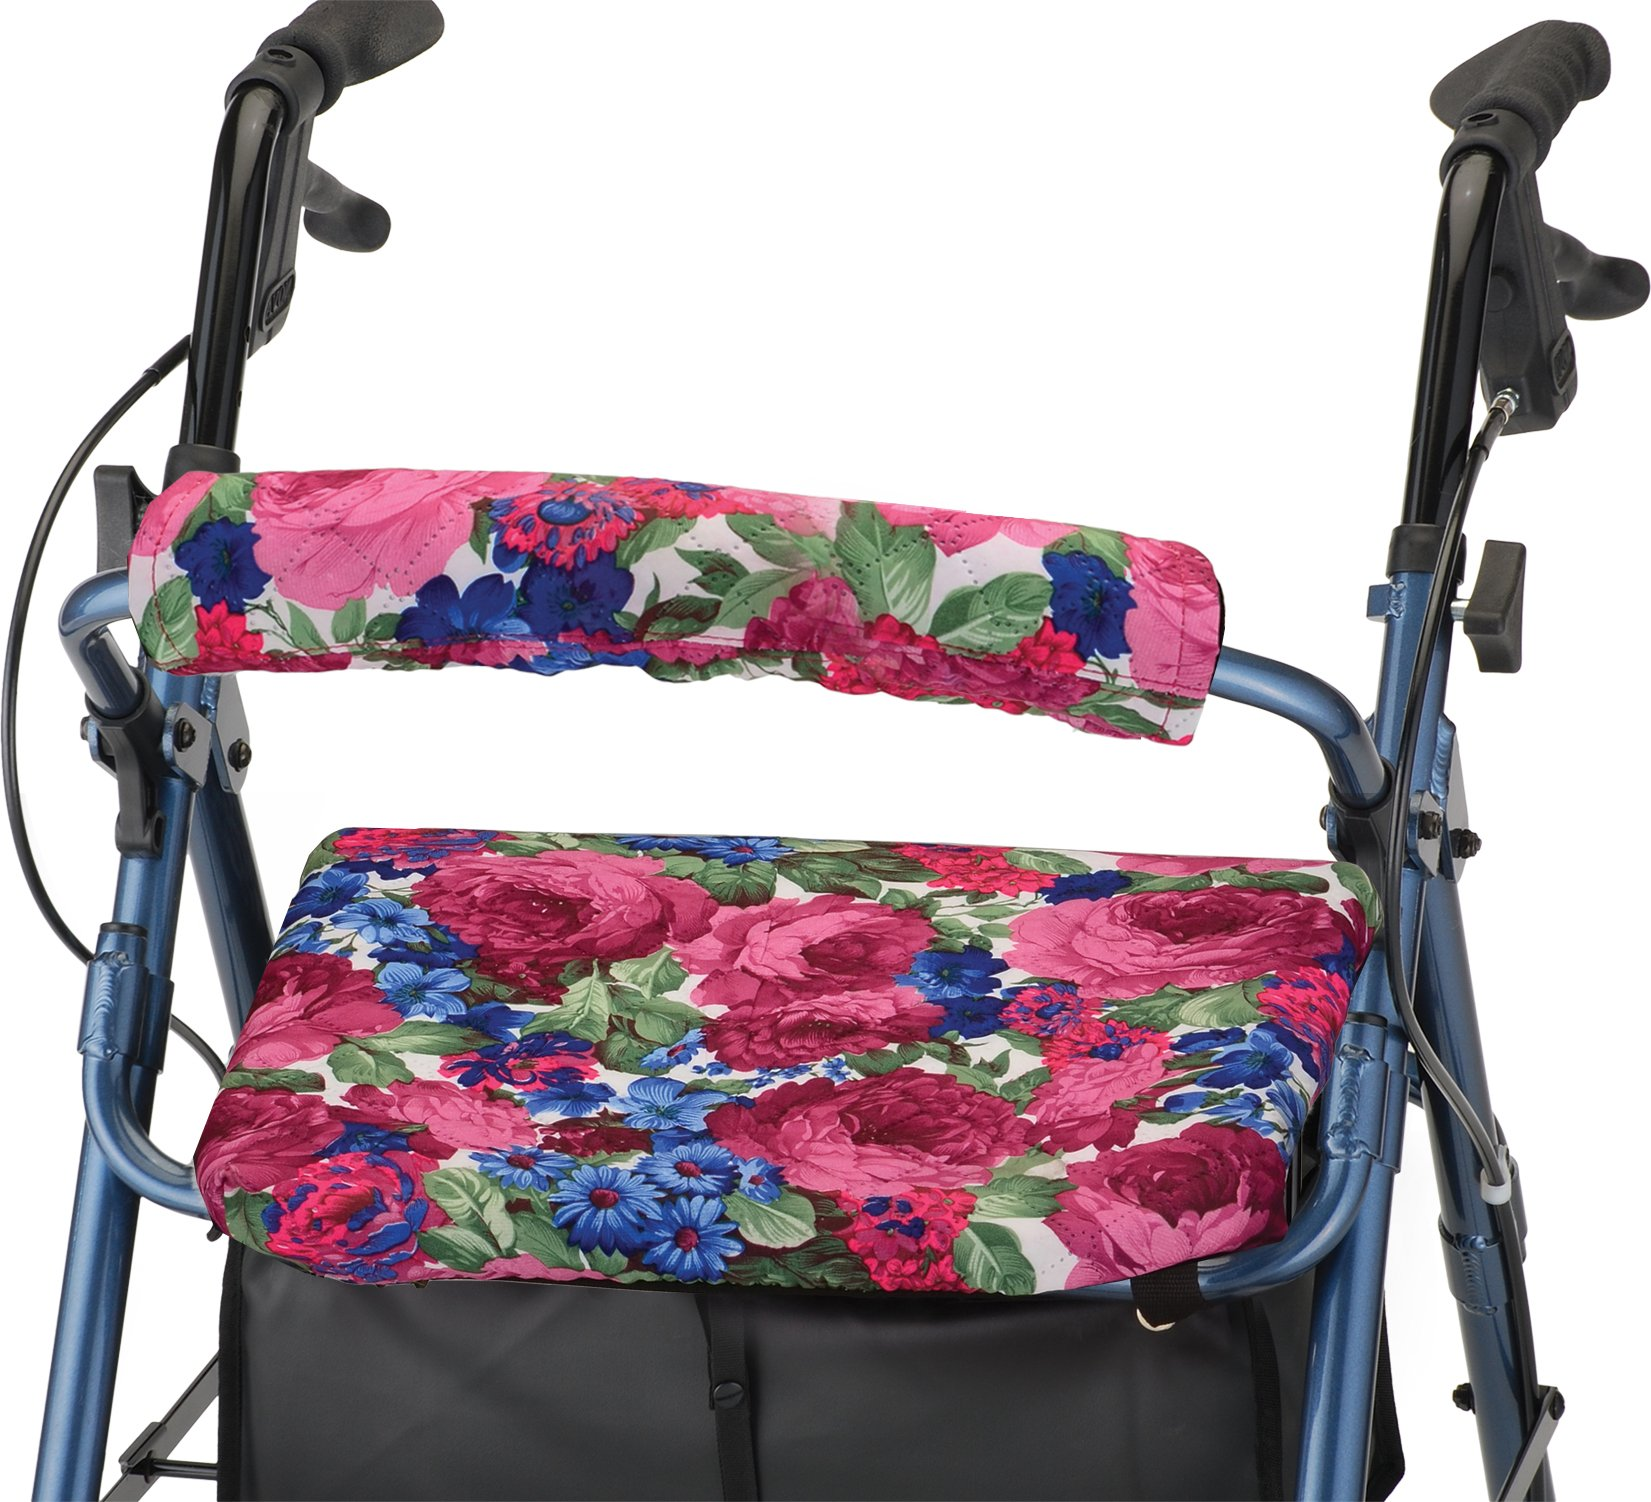 NOVA Rollator Walker Seat & Back Cover, Removable and Washable, ''English Garden'' Design by NOVA Medical Products